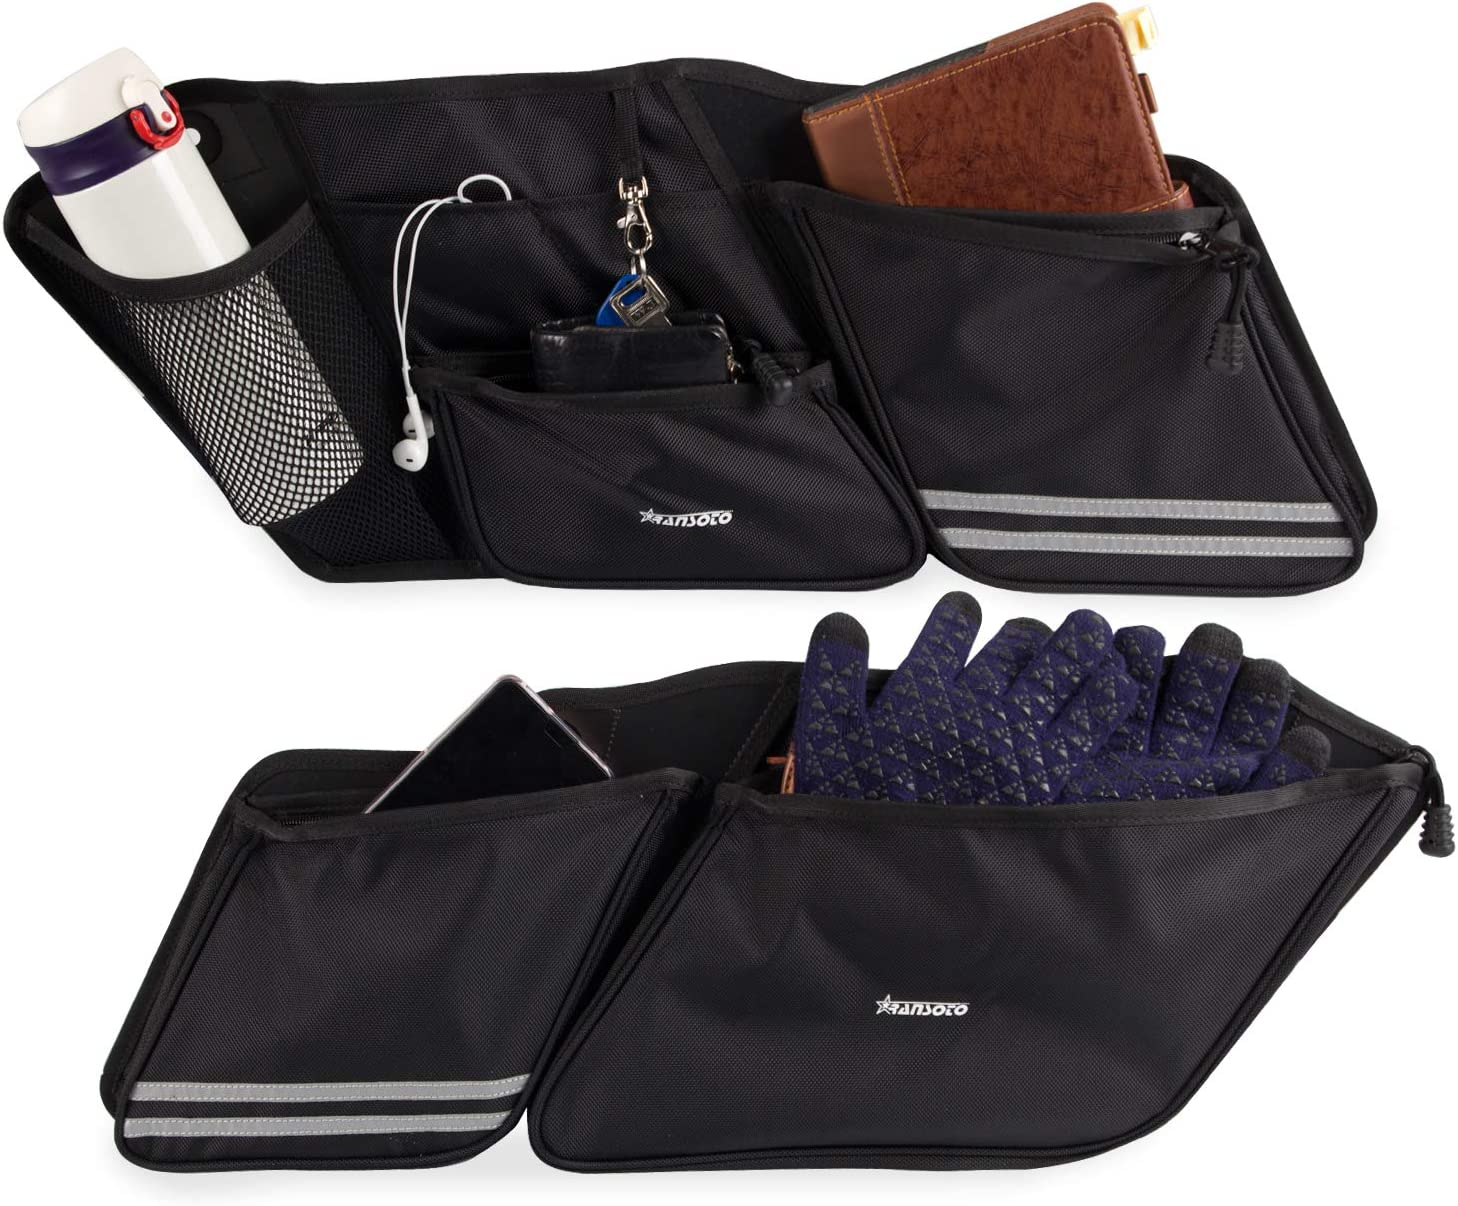 1 Pair Street Saddlebag Organizers Side Bag Compatible with 2014-2020 Street Glide Road King Road Glide Electra Glide